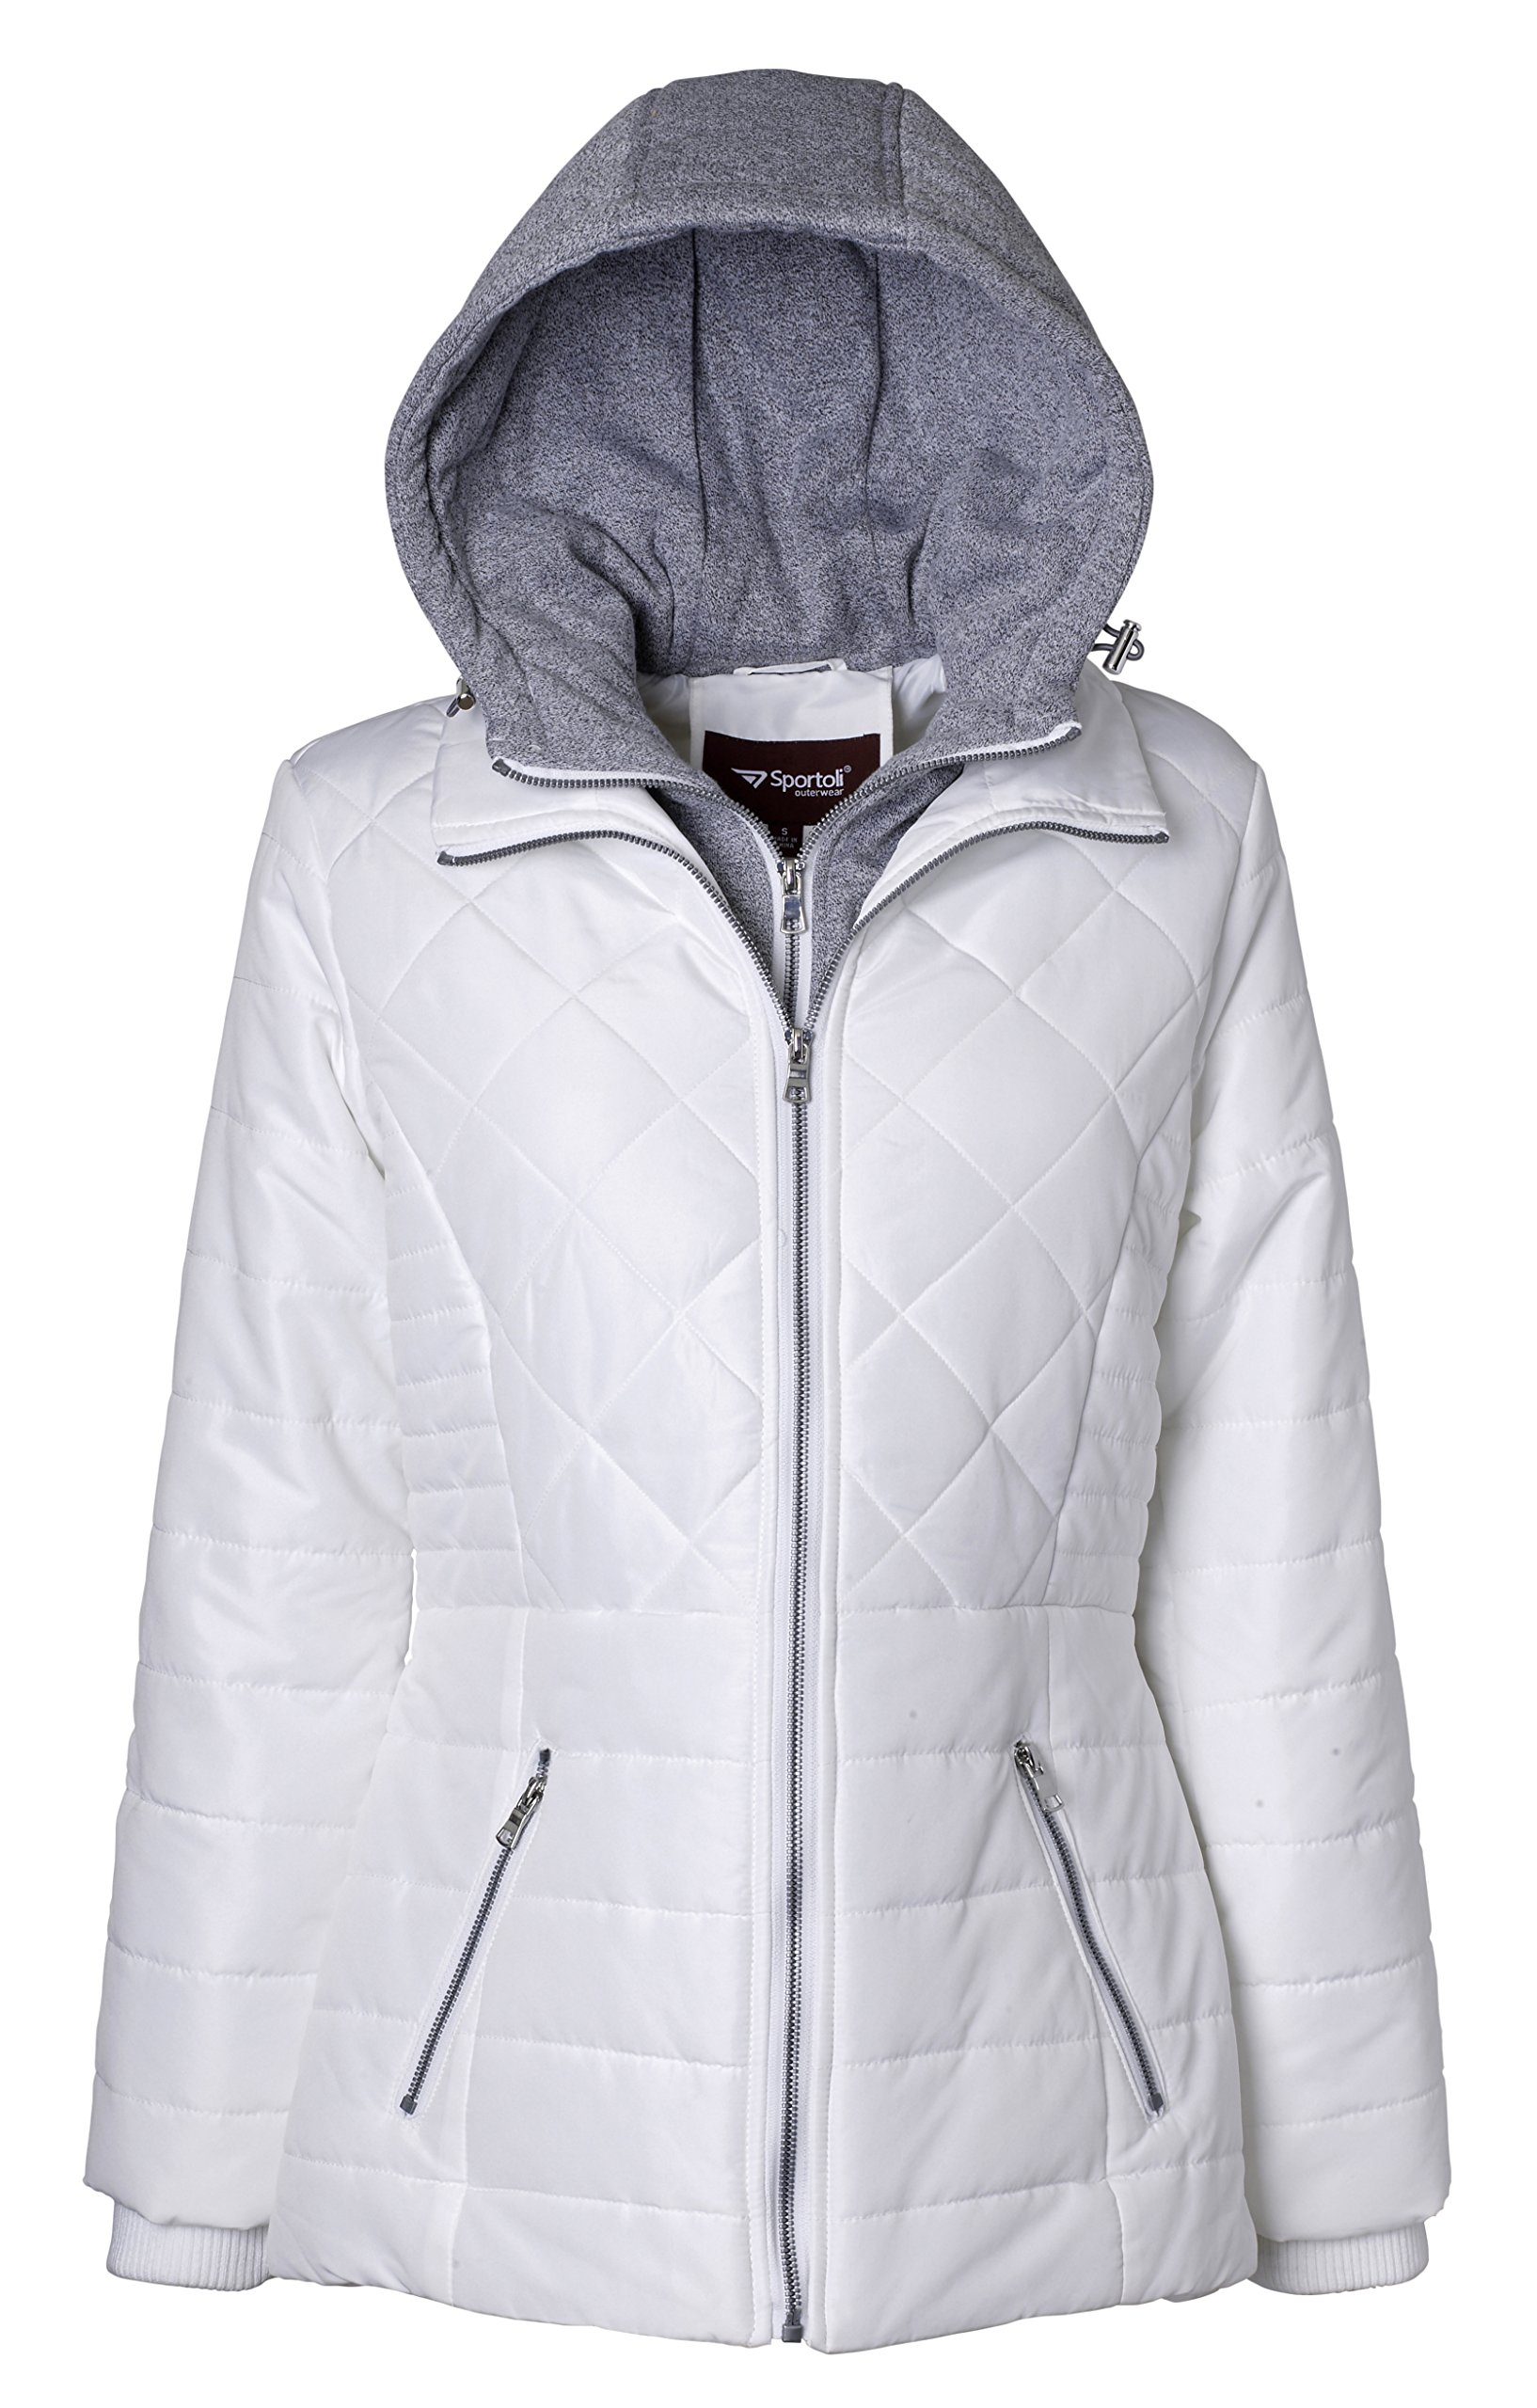 Sportoli Women's Down Alternative Quilted Midlength Vestee Puffer Jacket with Fleece Hood - Snow White (2X)